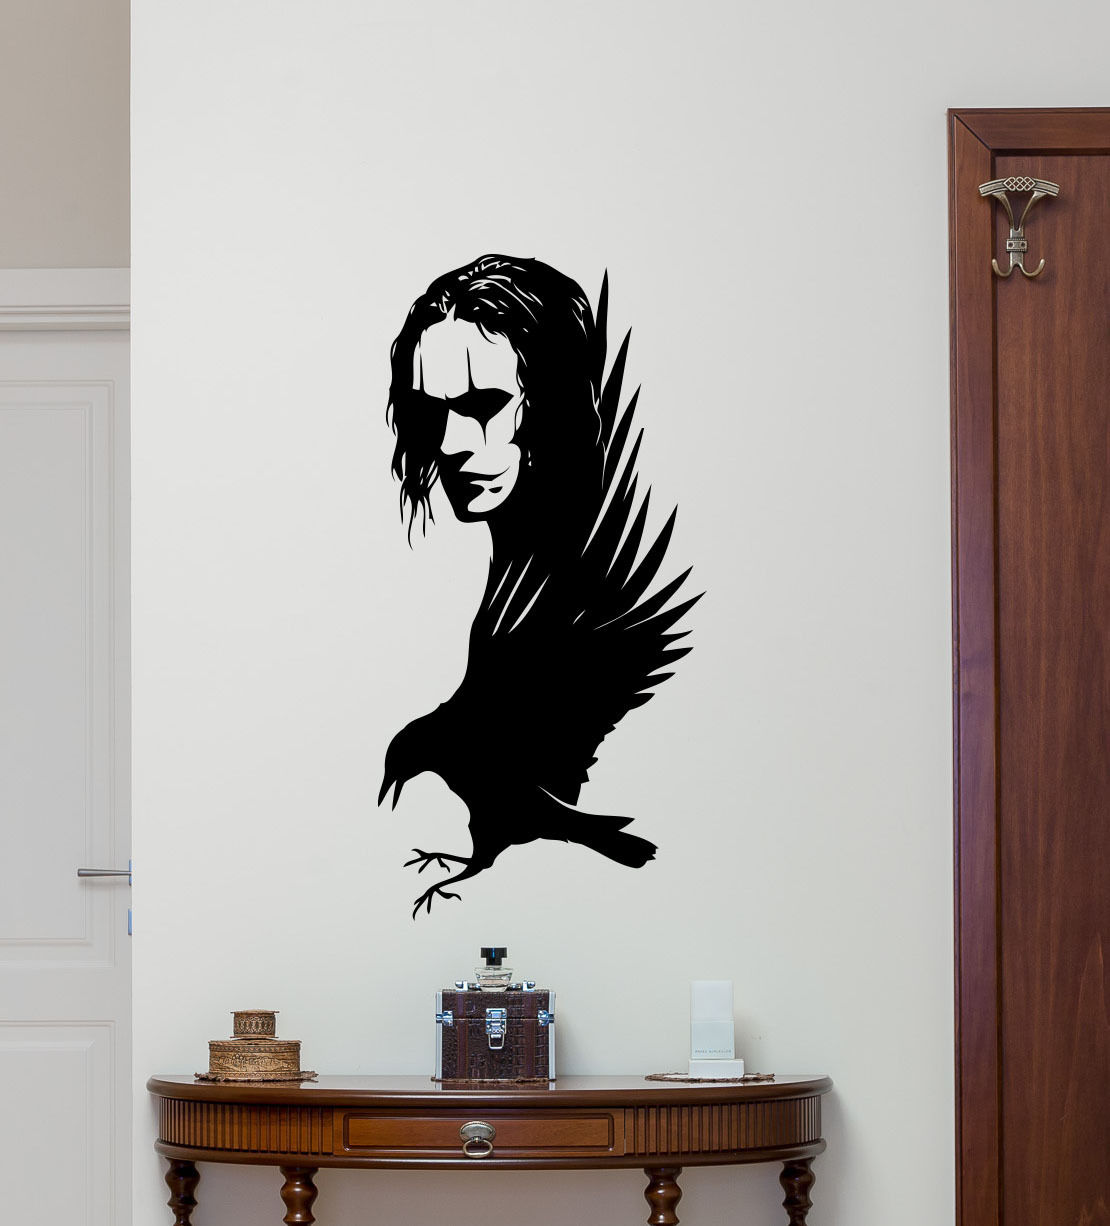 Die Krähe Wandtattoo Brandon Lee Film Vinyl Aufkleber Poster Home Decor Art Dekorationen Wohnzimmer Removable Wandbild E574